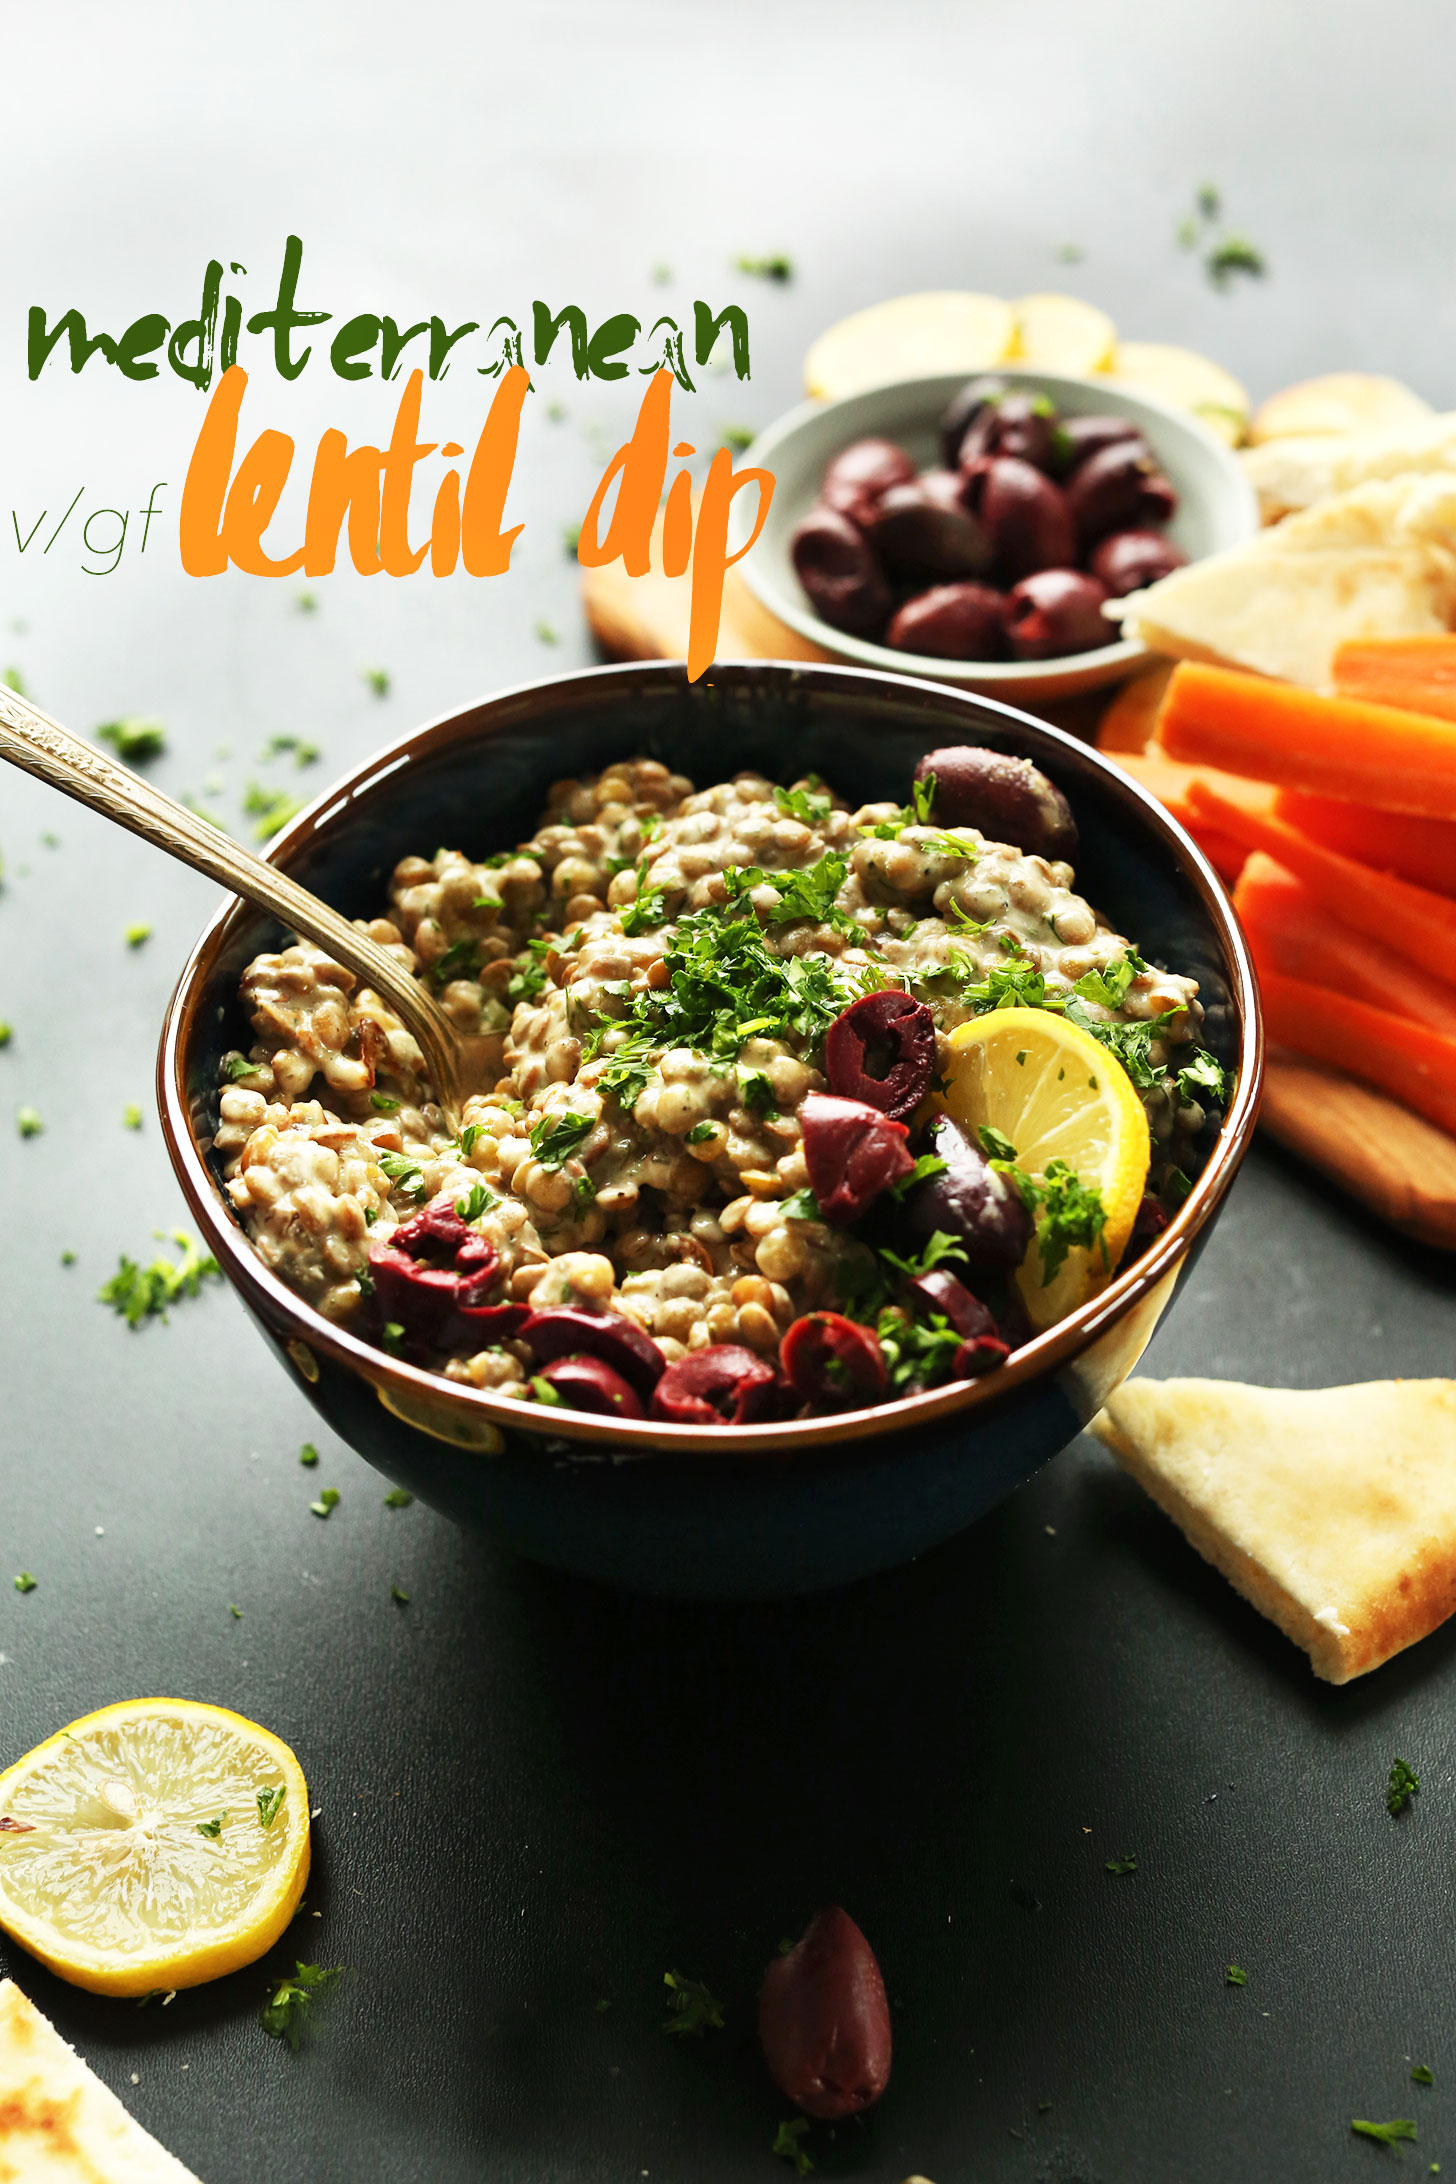 Big bowl of our Mediterranean Lentil Dip for the perfect vegan appetizer